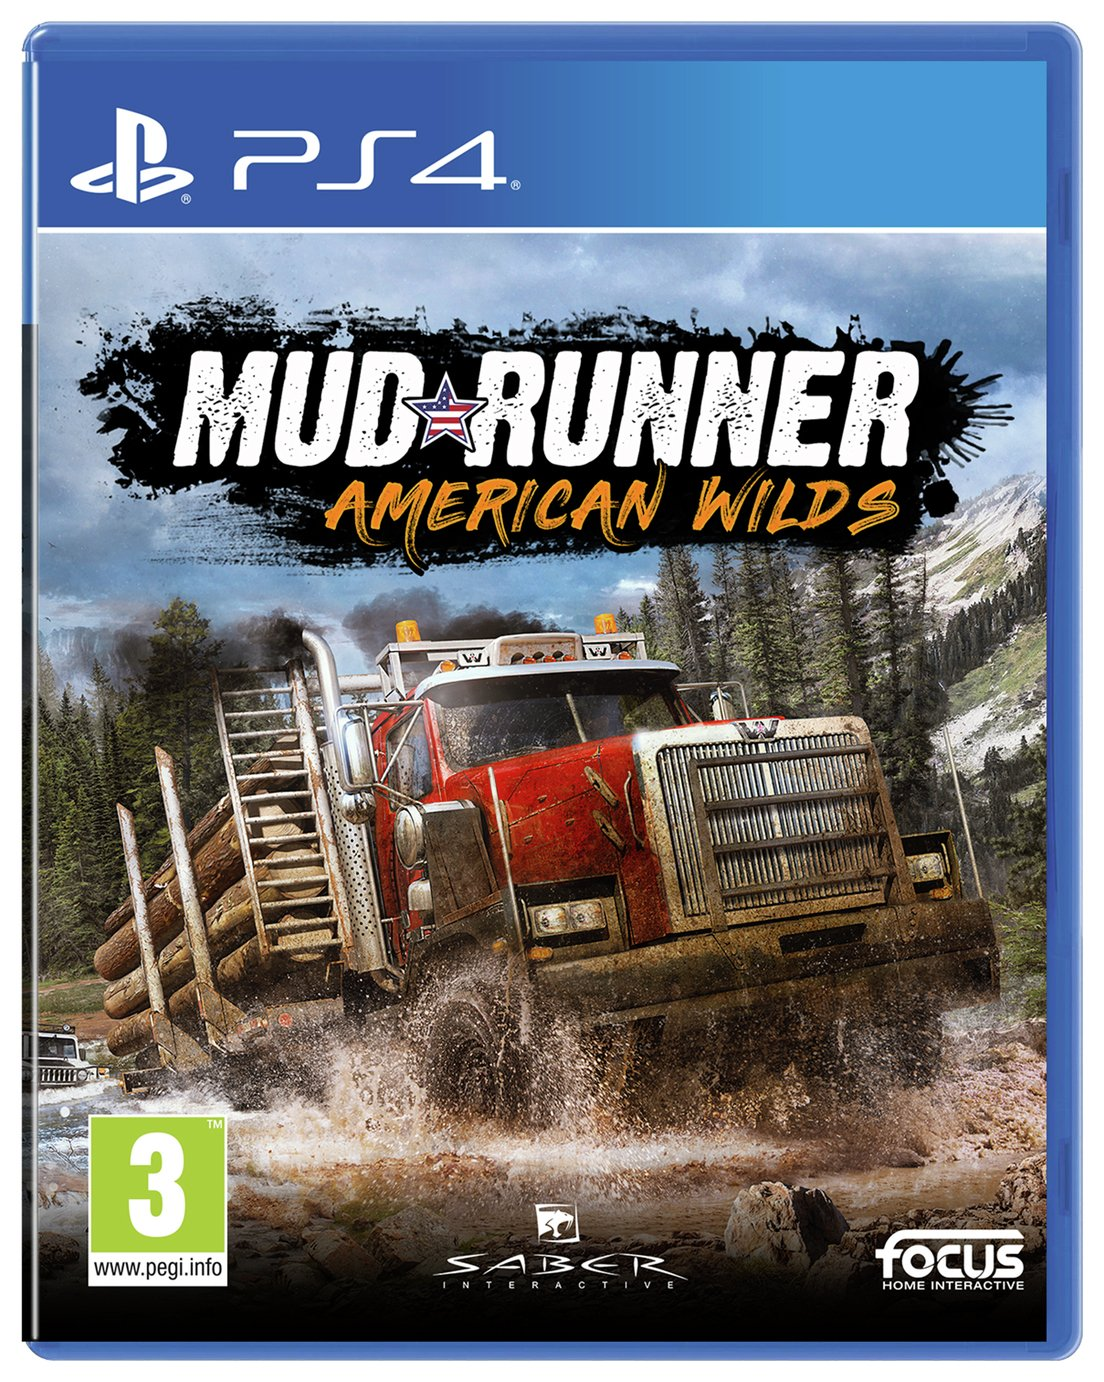 Spintires: MudRunner - American Wilds Edition (PS4) Best Price and Cheapest